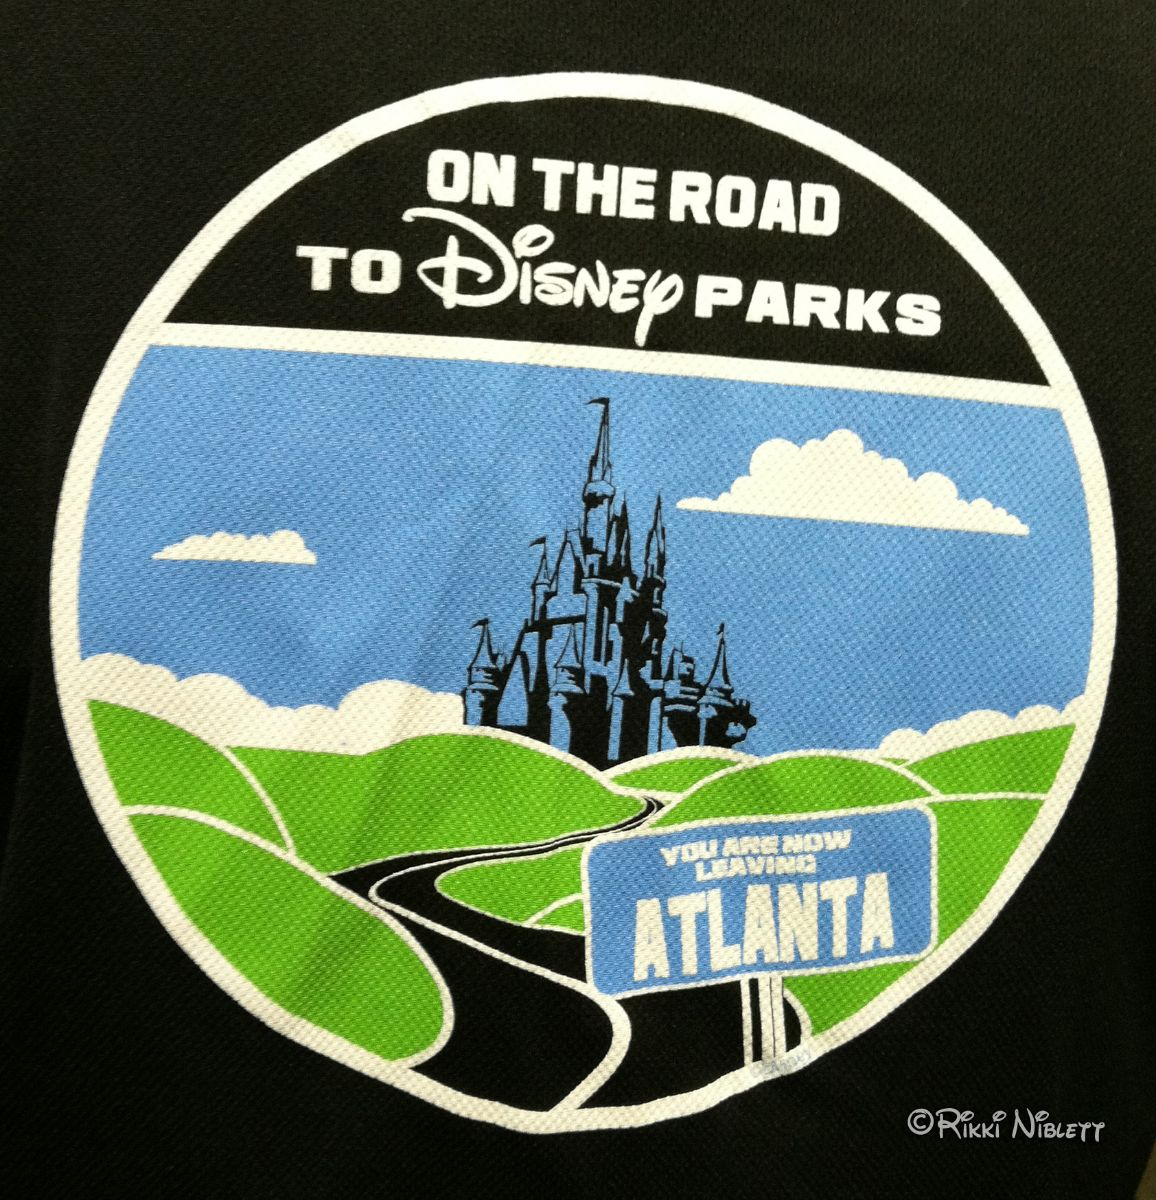 On The Road To Disney Parks - Atlanta